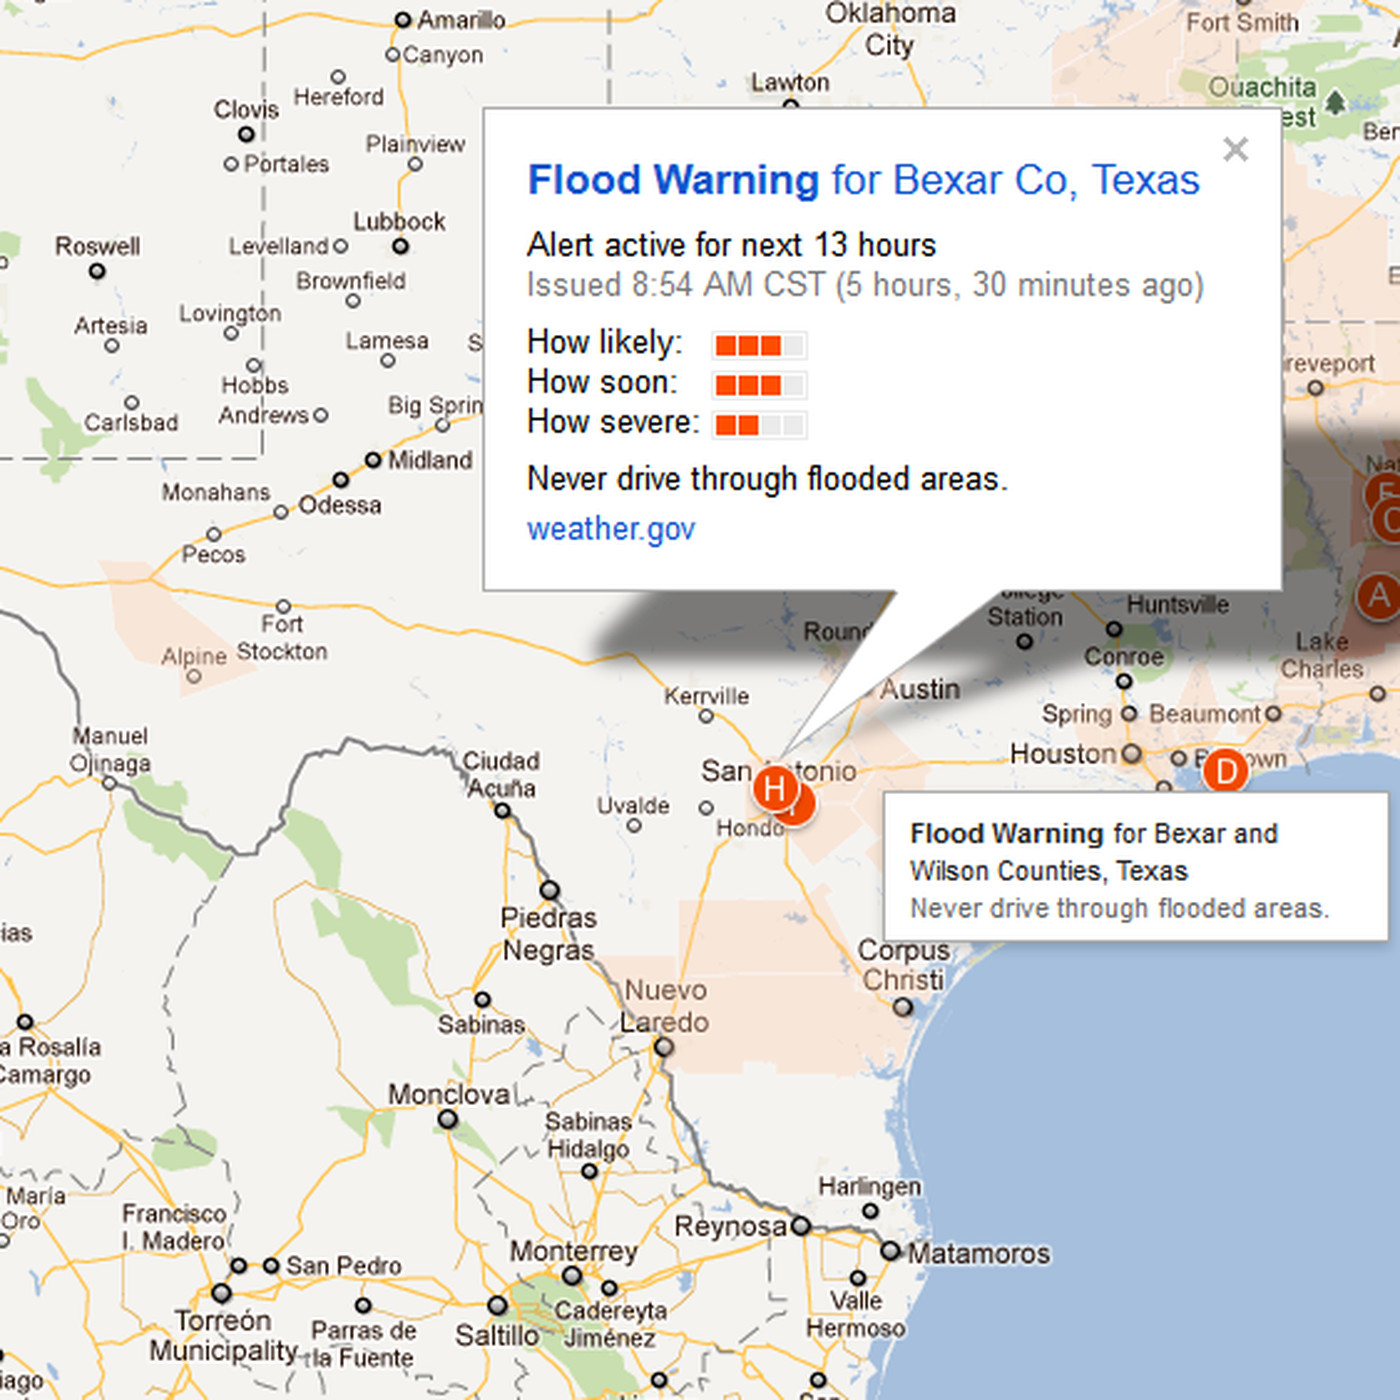 Google adds emergency alerts to Maps - The Verge on nasa flood map, google listing, live flood map, geographic information system flood map, world flood map, search flood map, google scholar, google property search, al gore flood map,